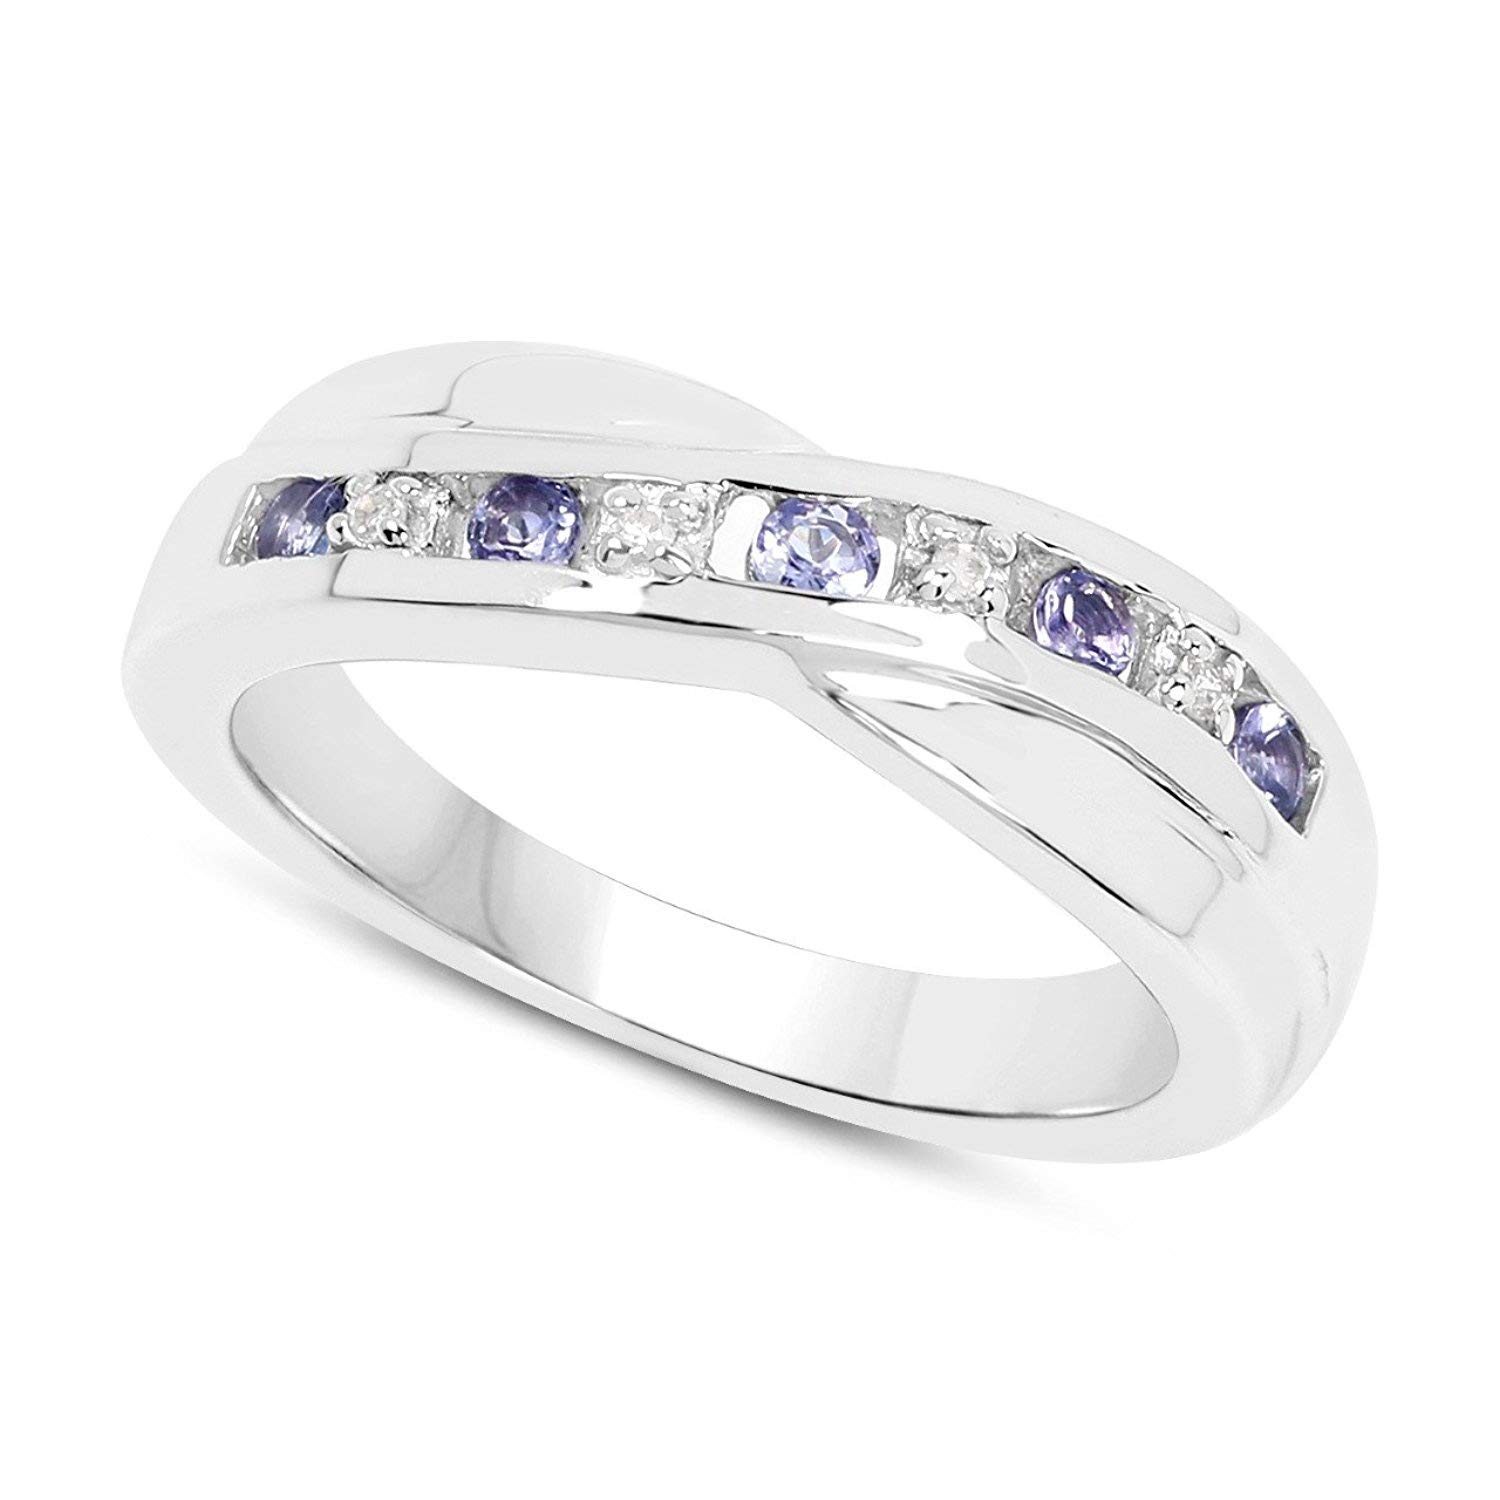 cf4b4a504 The Diamond Ring Collection: 9ct White Gold Tanzanite & Diamond Channel Set  Crossover Eternity Ring, Mother's Day, Anniversary Gift, Ring Size  H,I,J,K,L,M,N ...